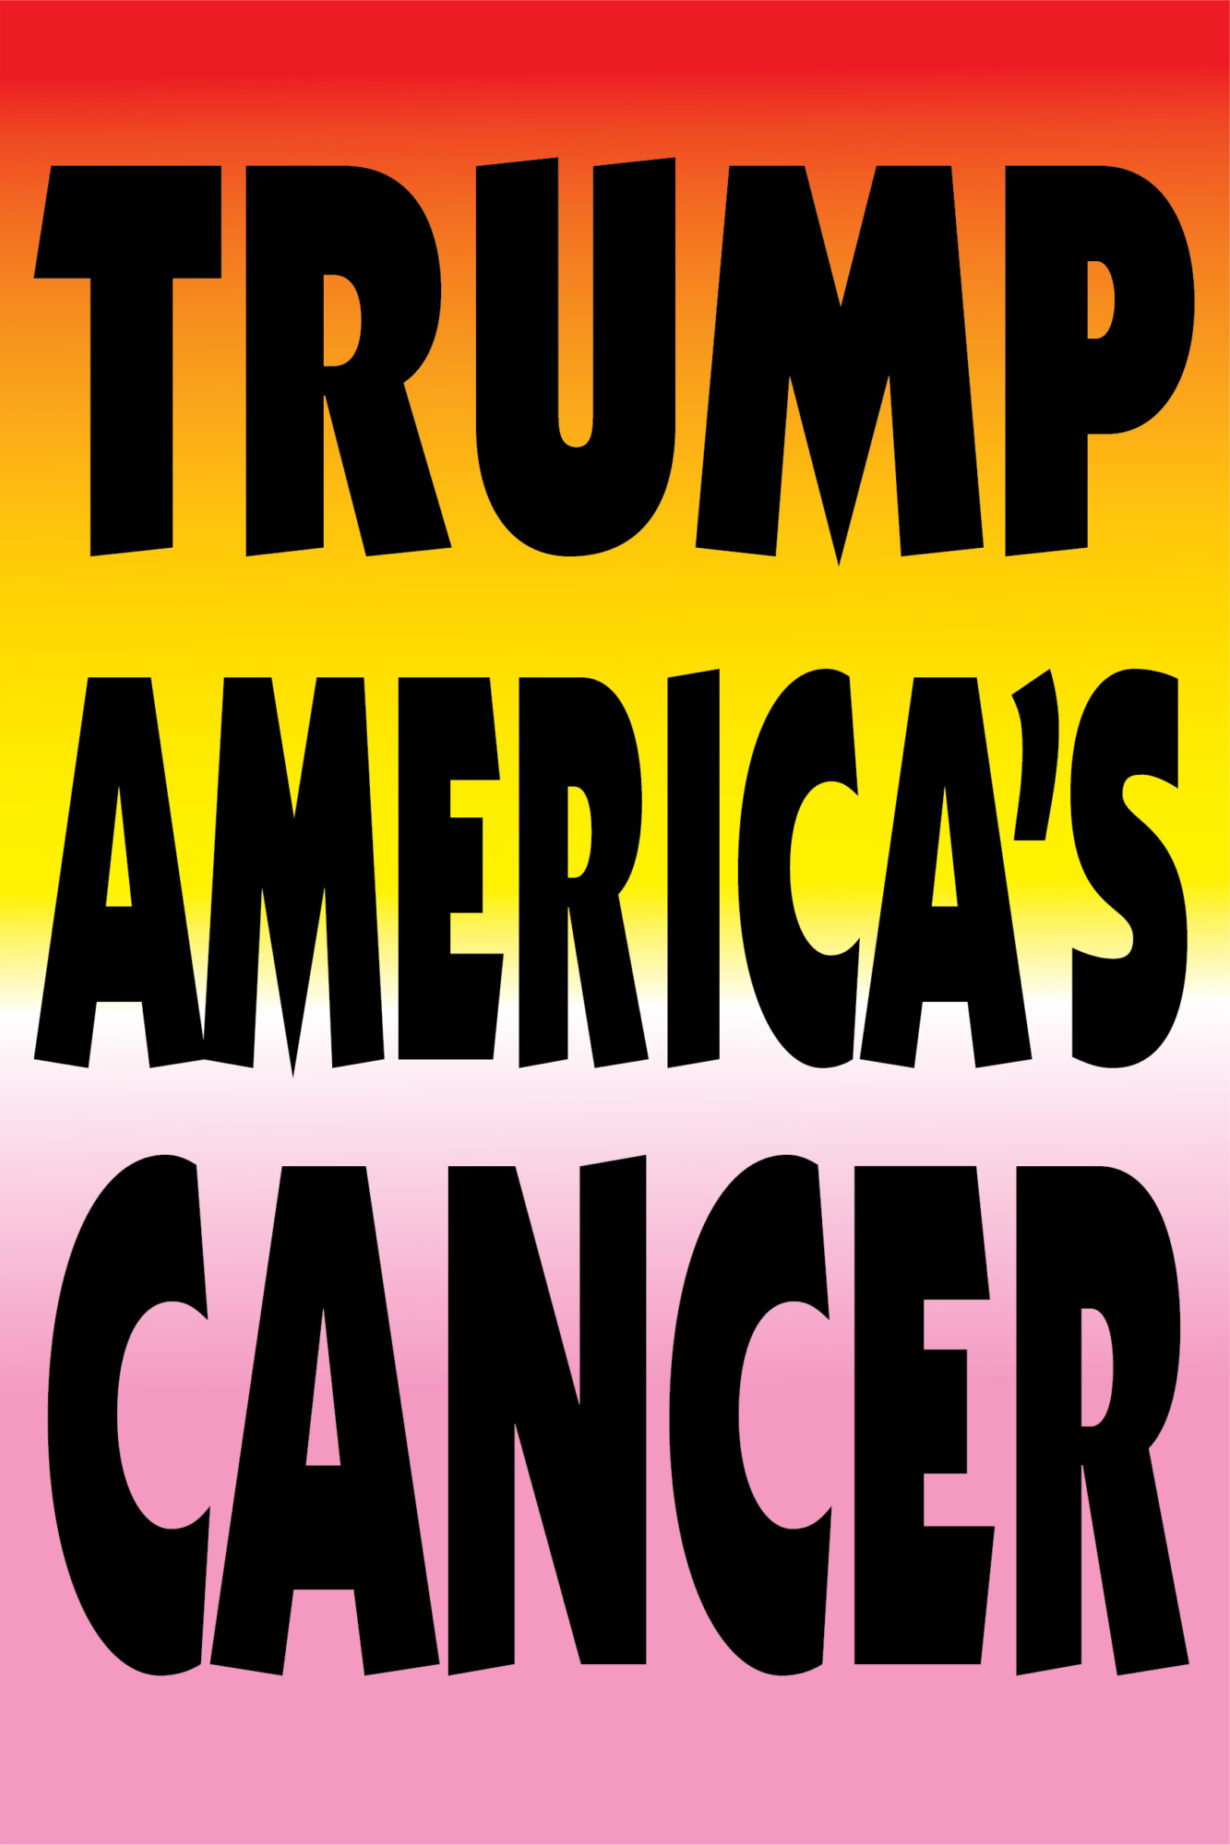 NP_26_50_2017_Trump-Americas-Cancer.jpg